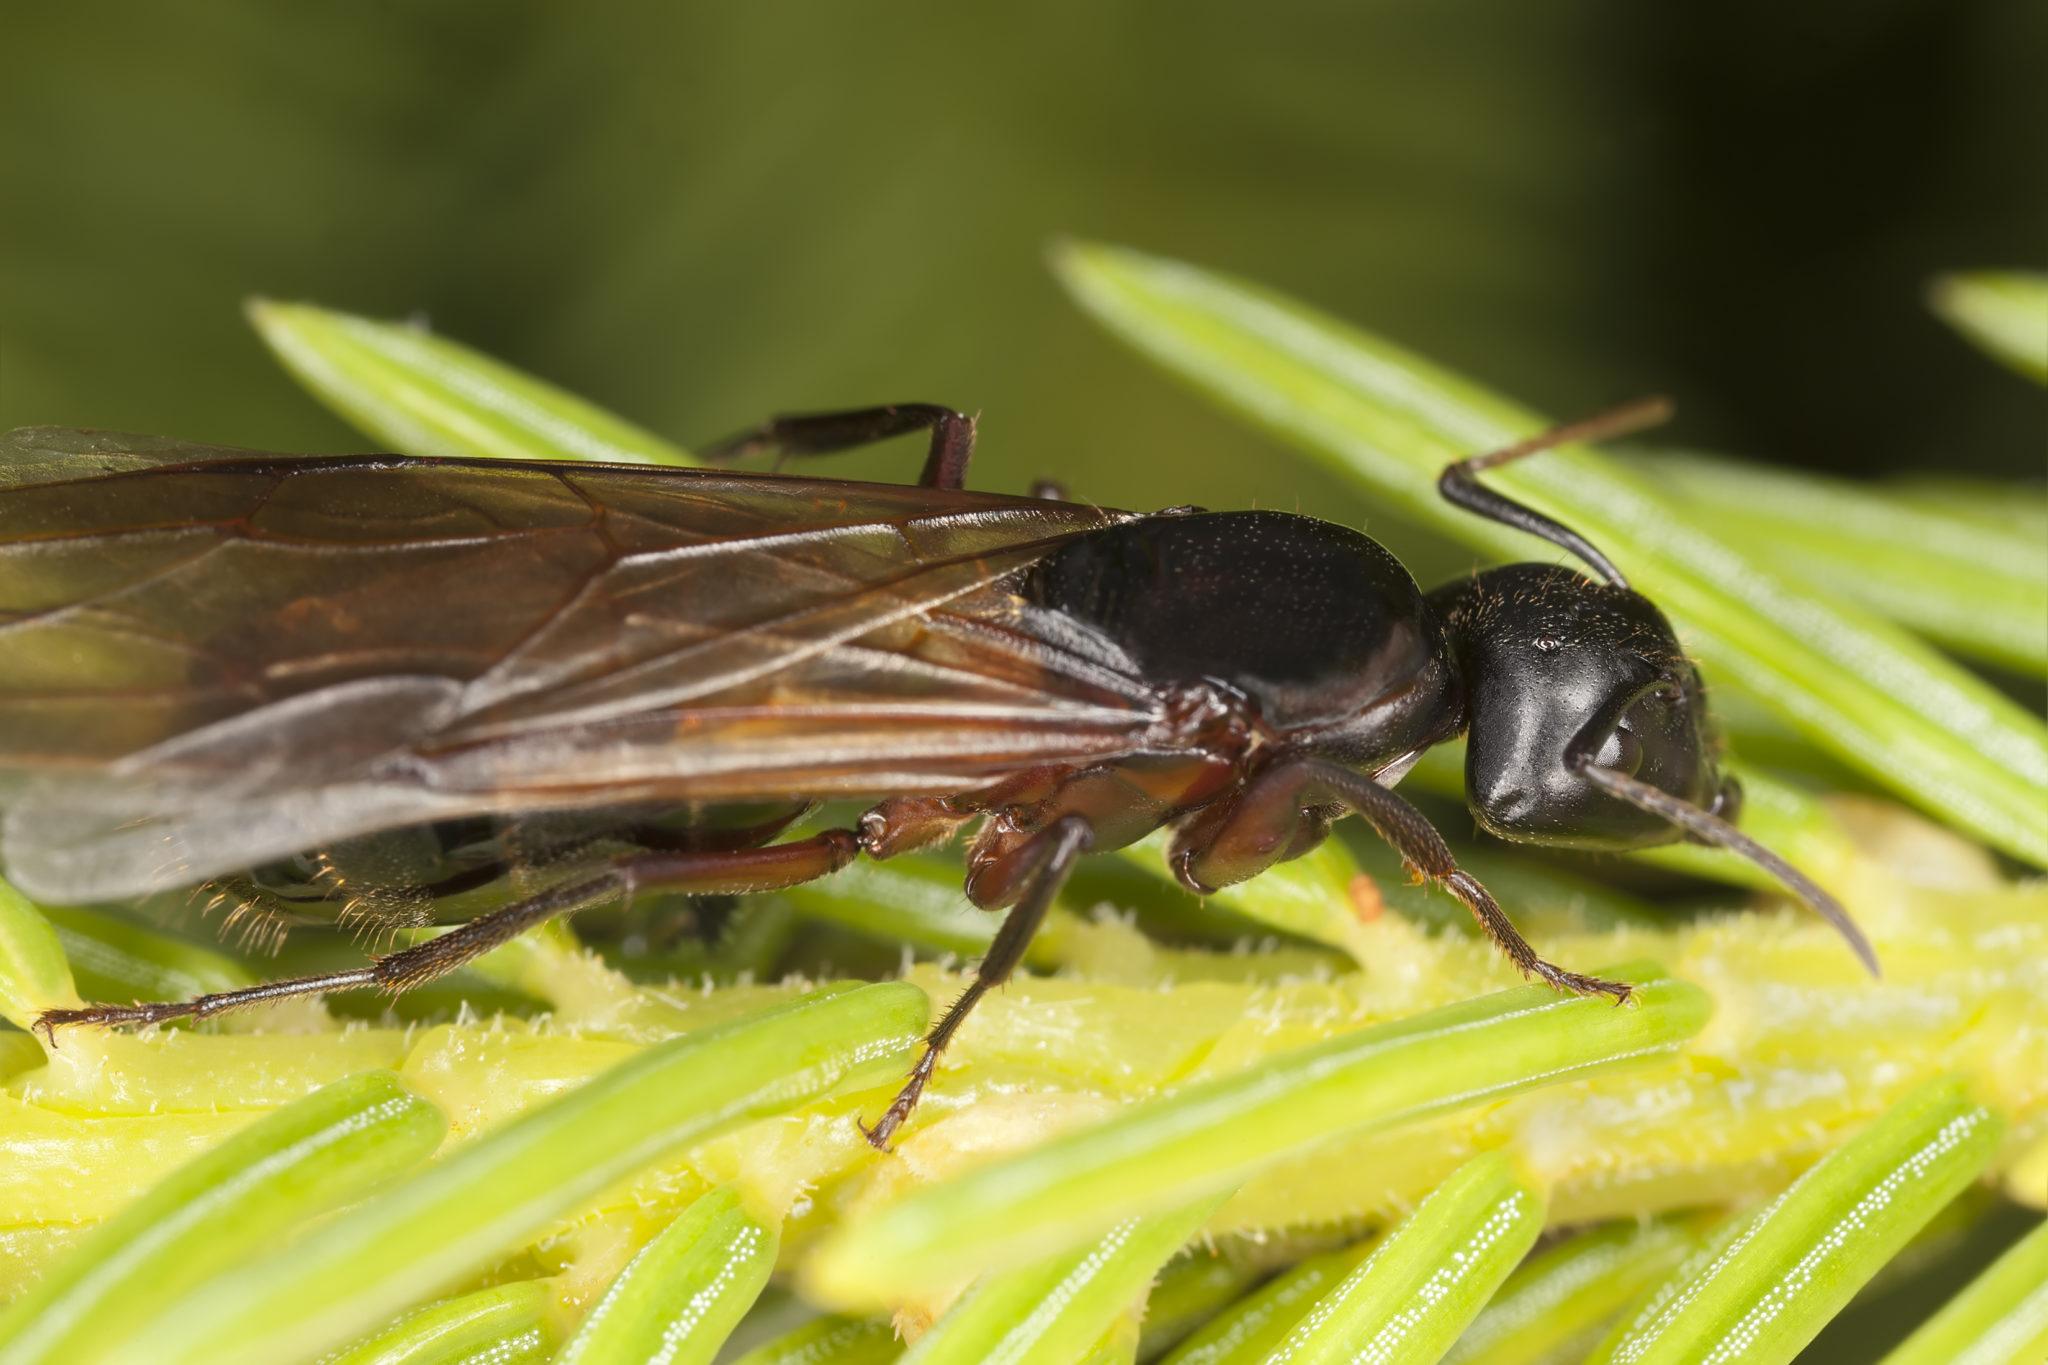 Identifying a Flying Carpenter Ant in Your Home